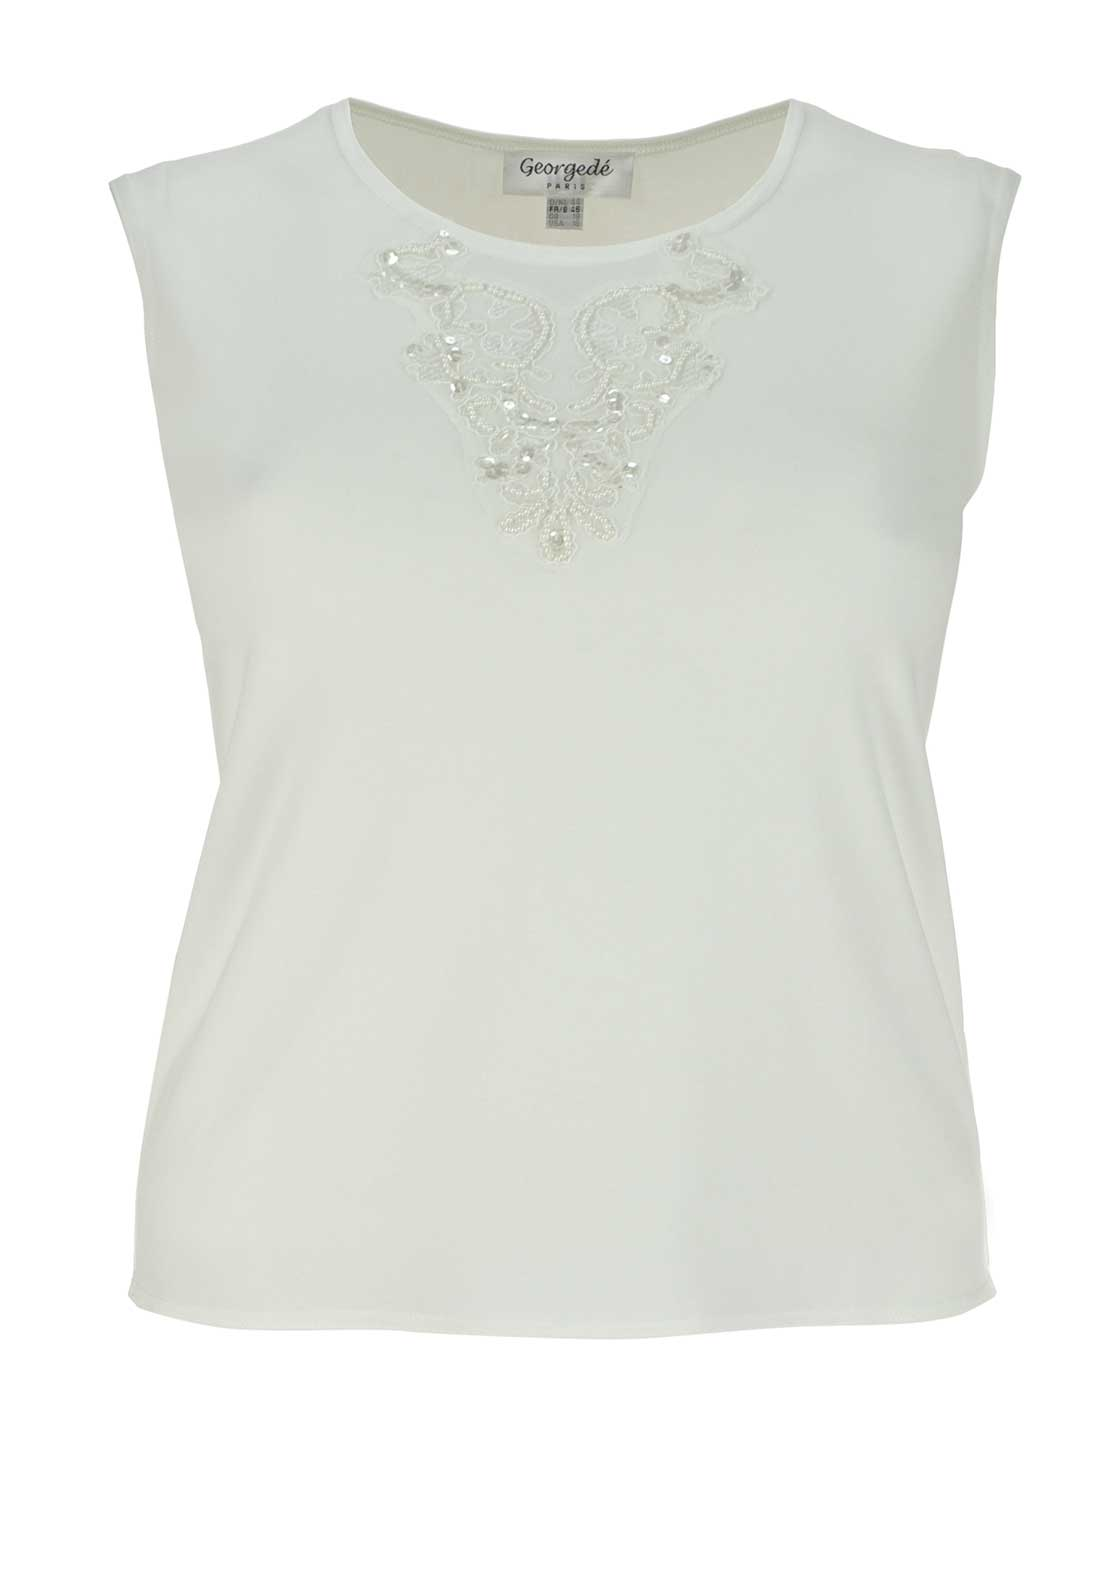 Georgede Bead Embellished Sleeveless Top, Cream